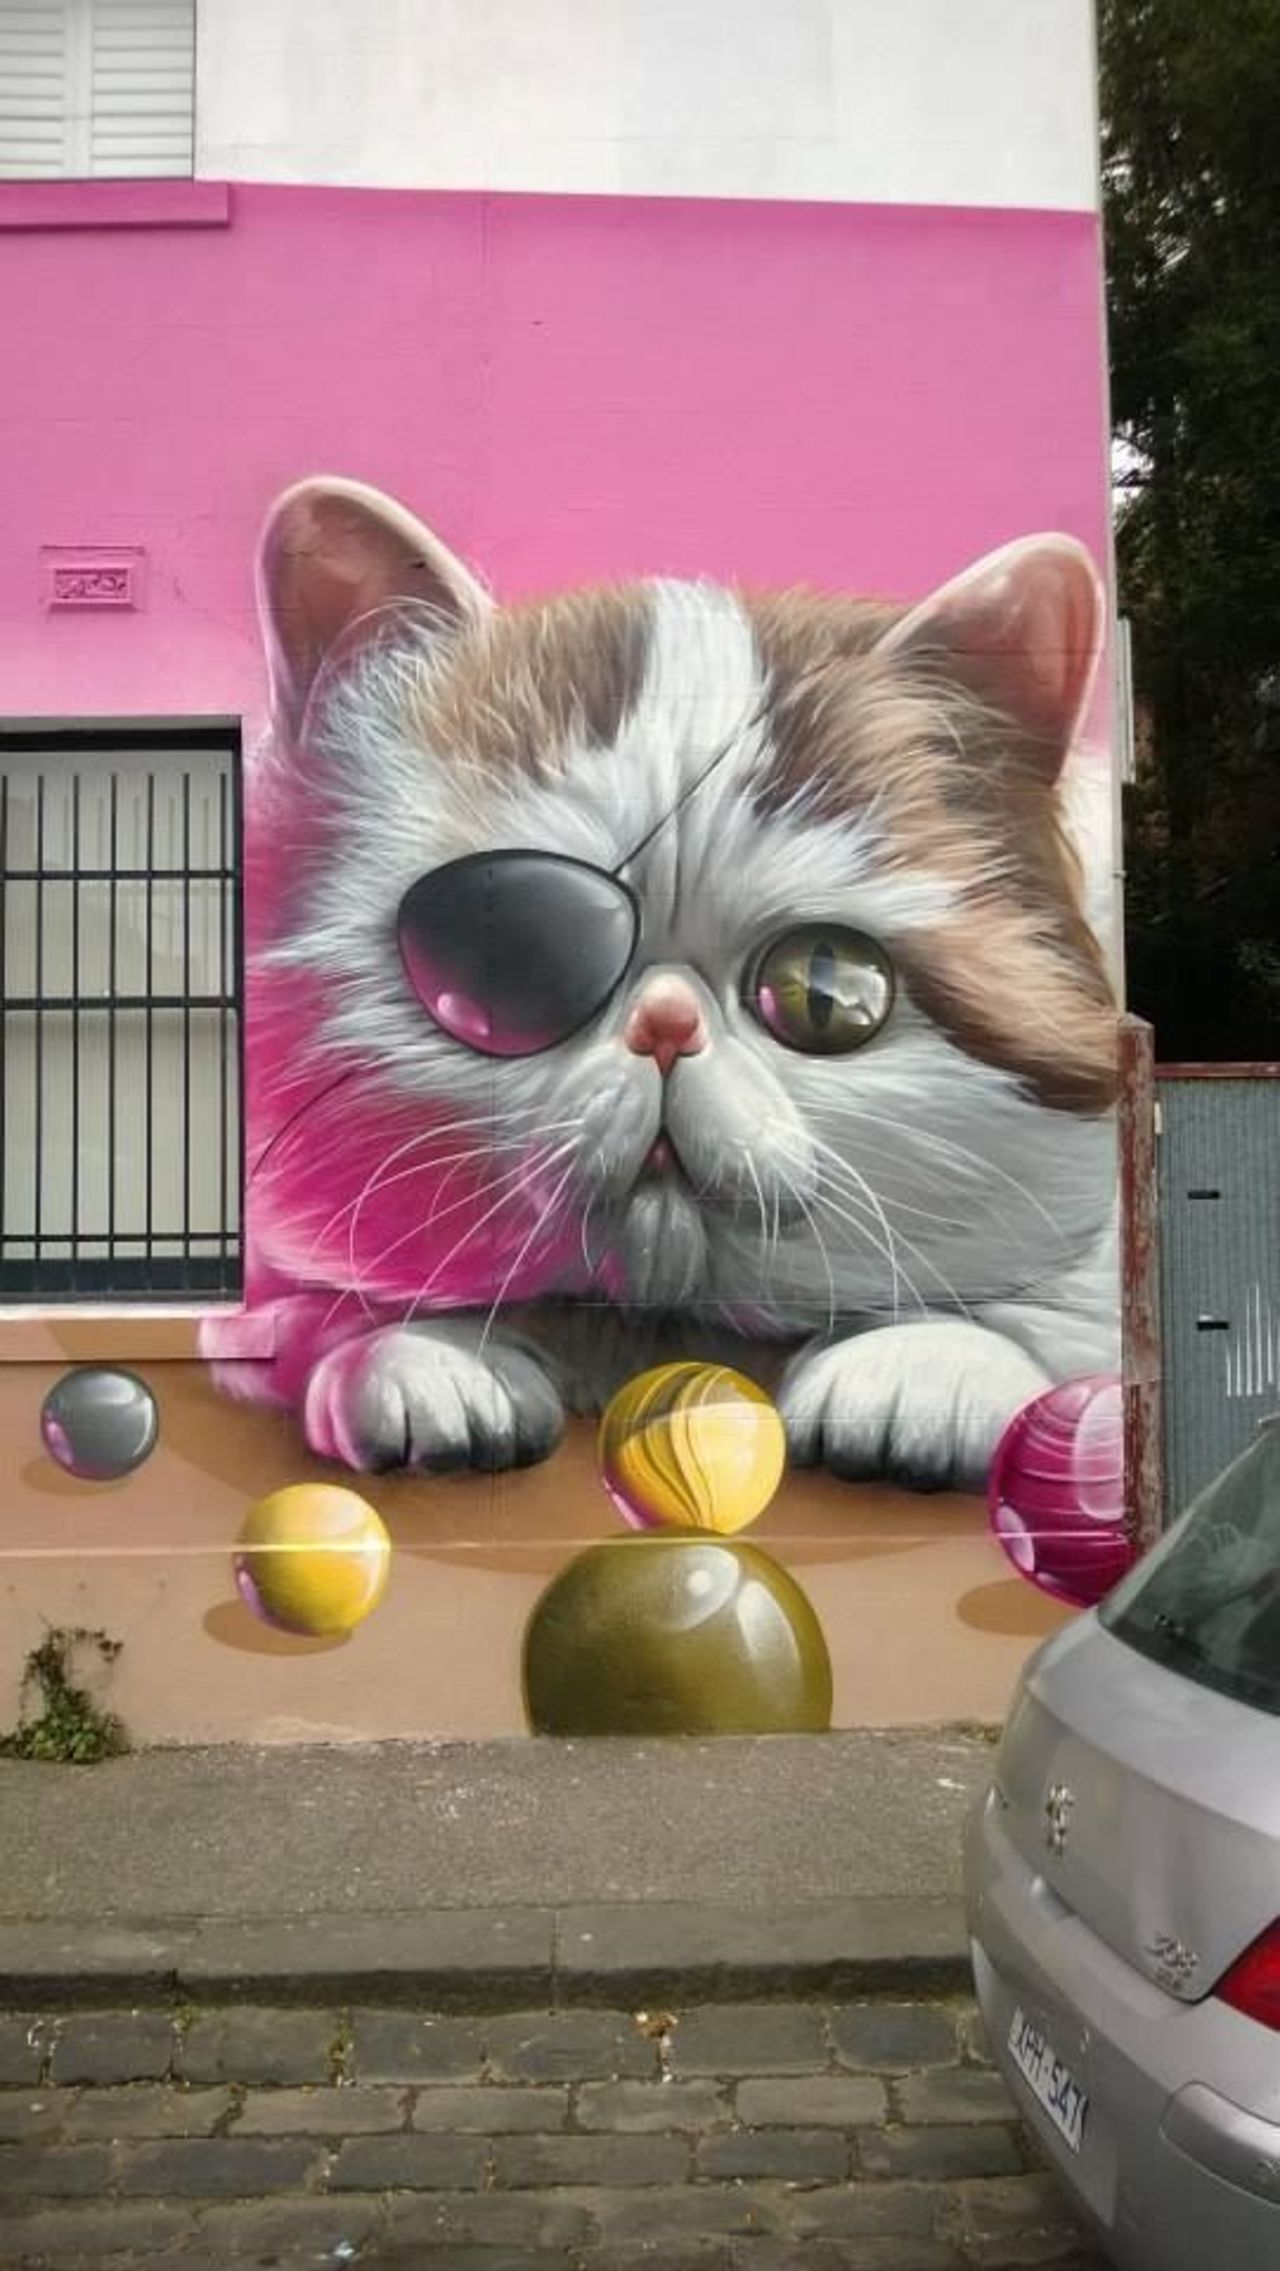 Street art in Melbourne Australia